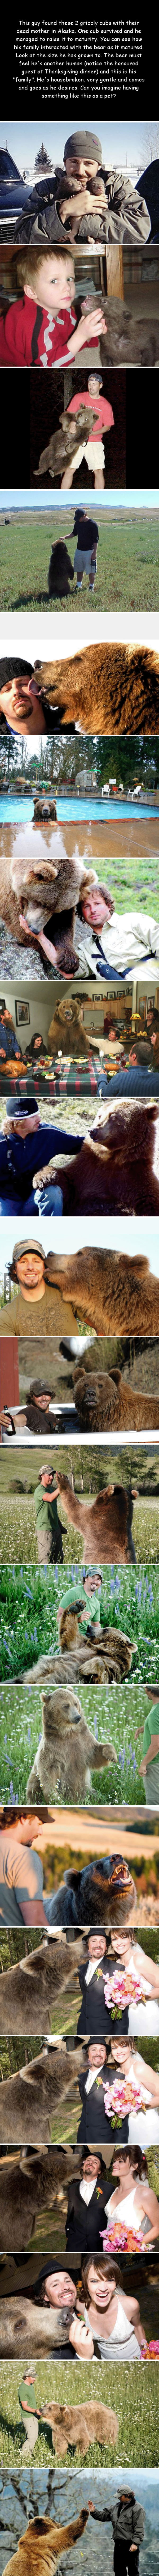 The story of a man and a bear